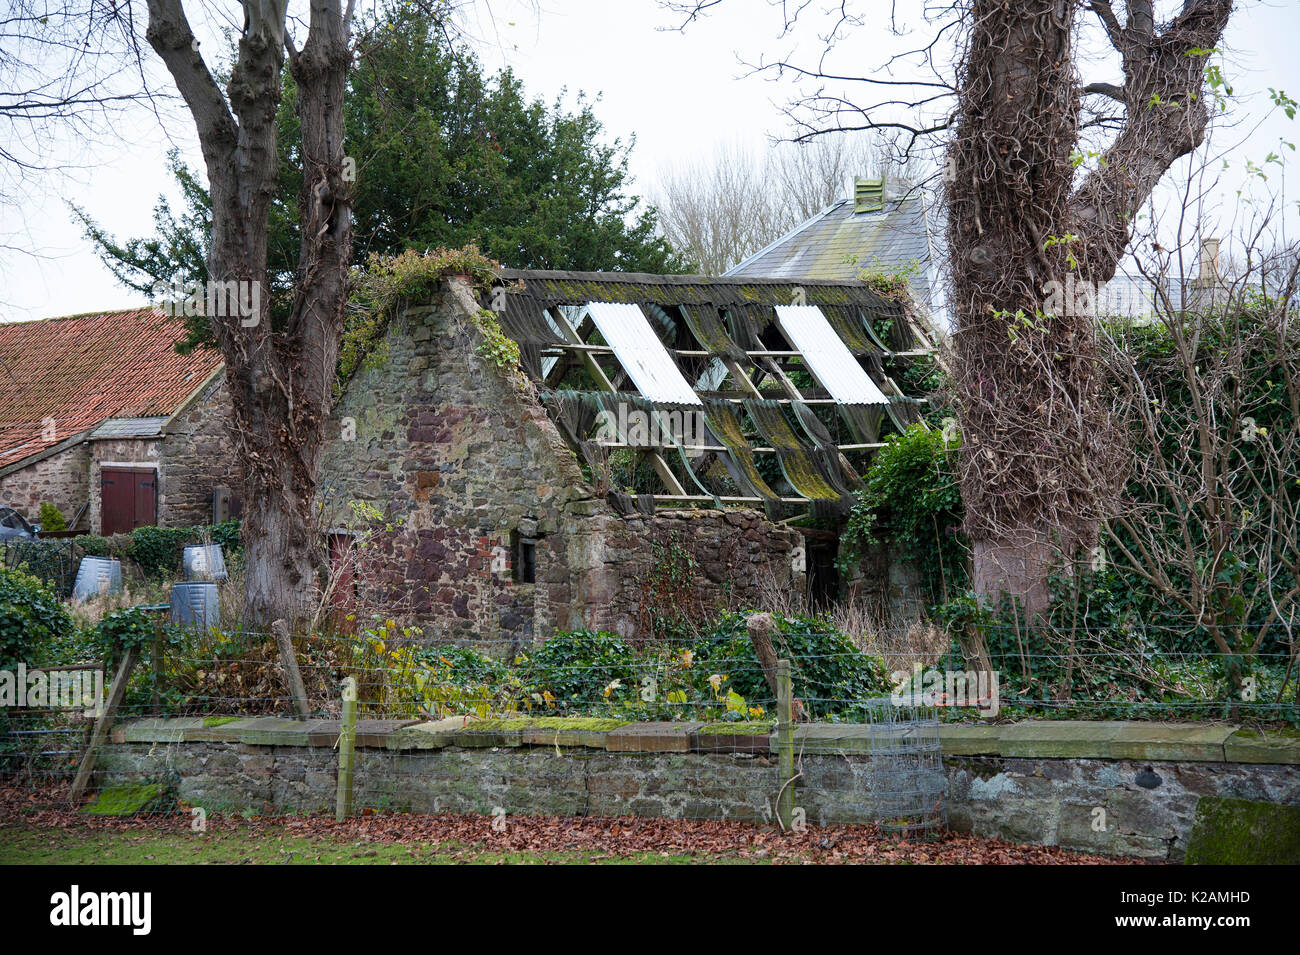 Ruined building being taken back by nature. - Stock Image